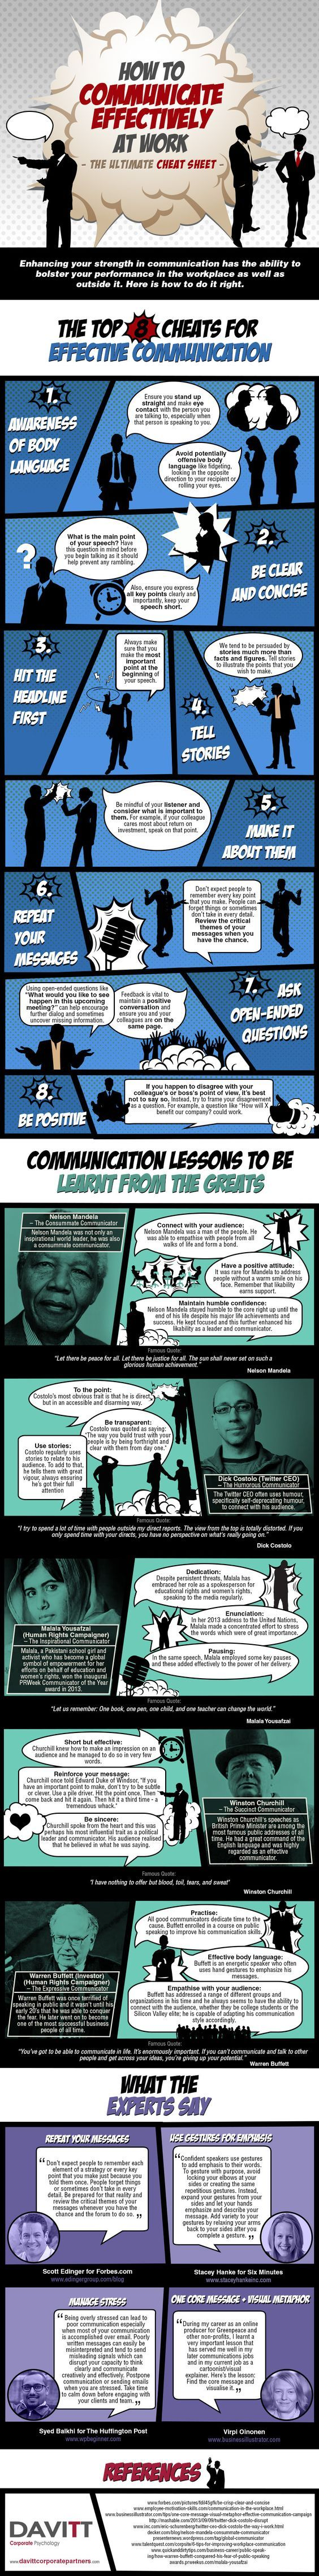 Uncategorized small business ideas small businesses ehow home business ideas to startsmall business ideas bad good ugly ideas - How To Communicate Effectively At Work The Ultimate Cheat Sheet Infographic Business Communication